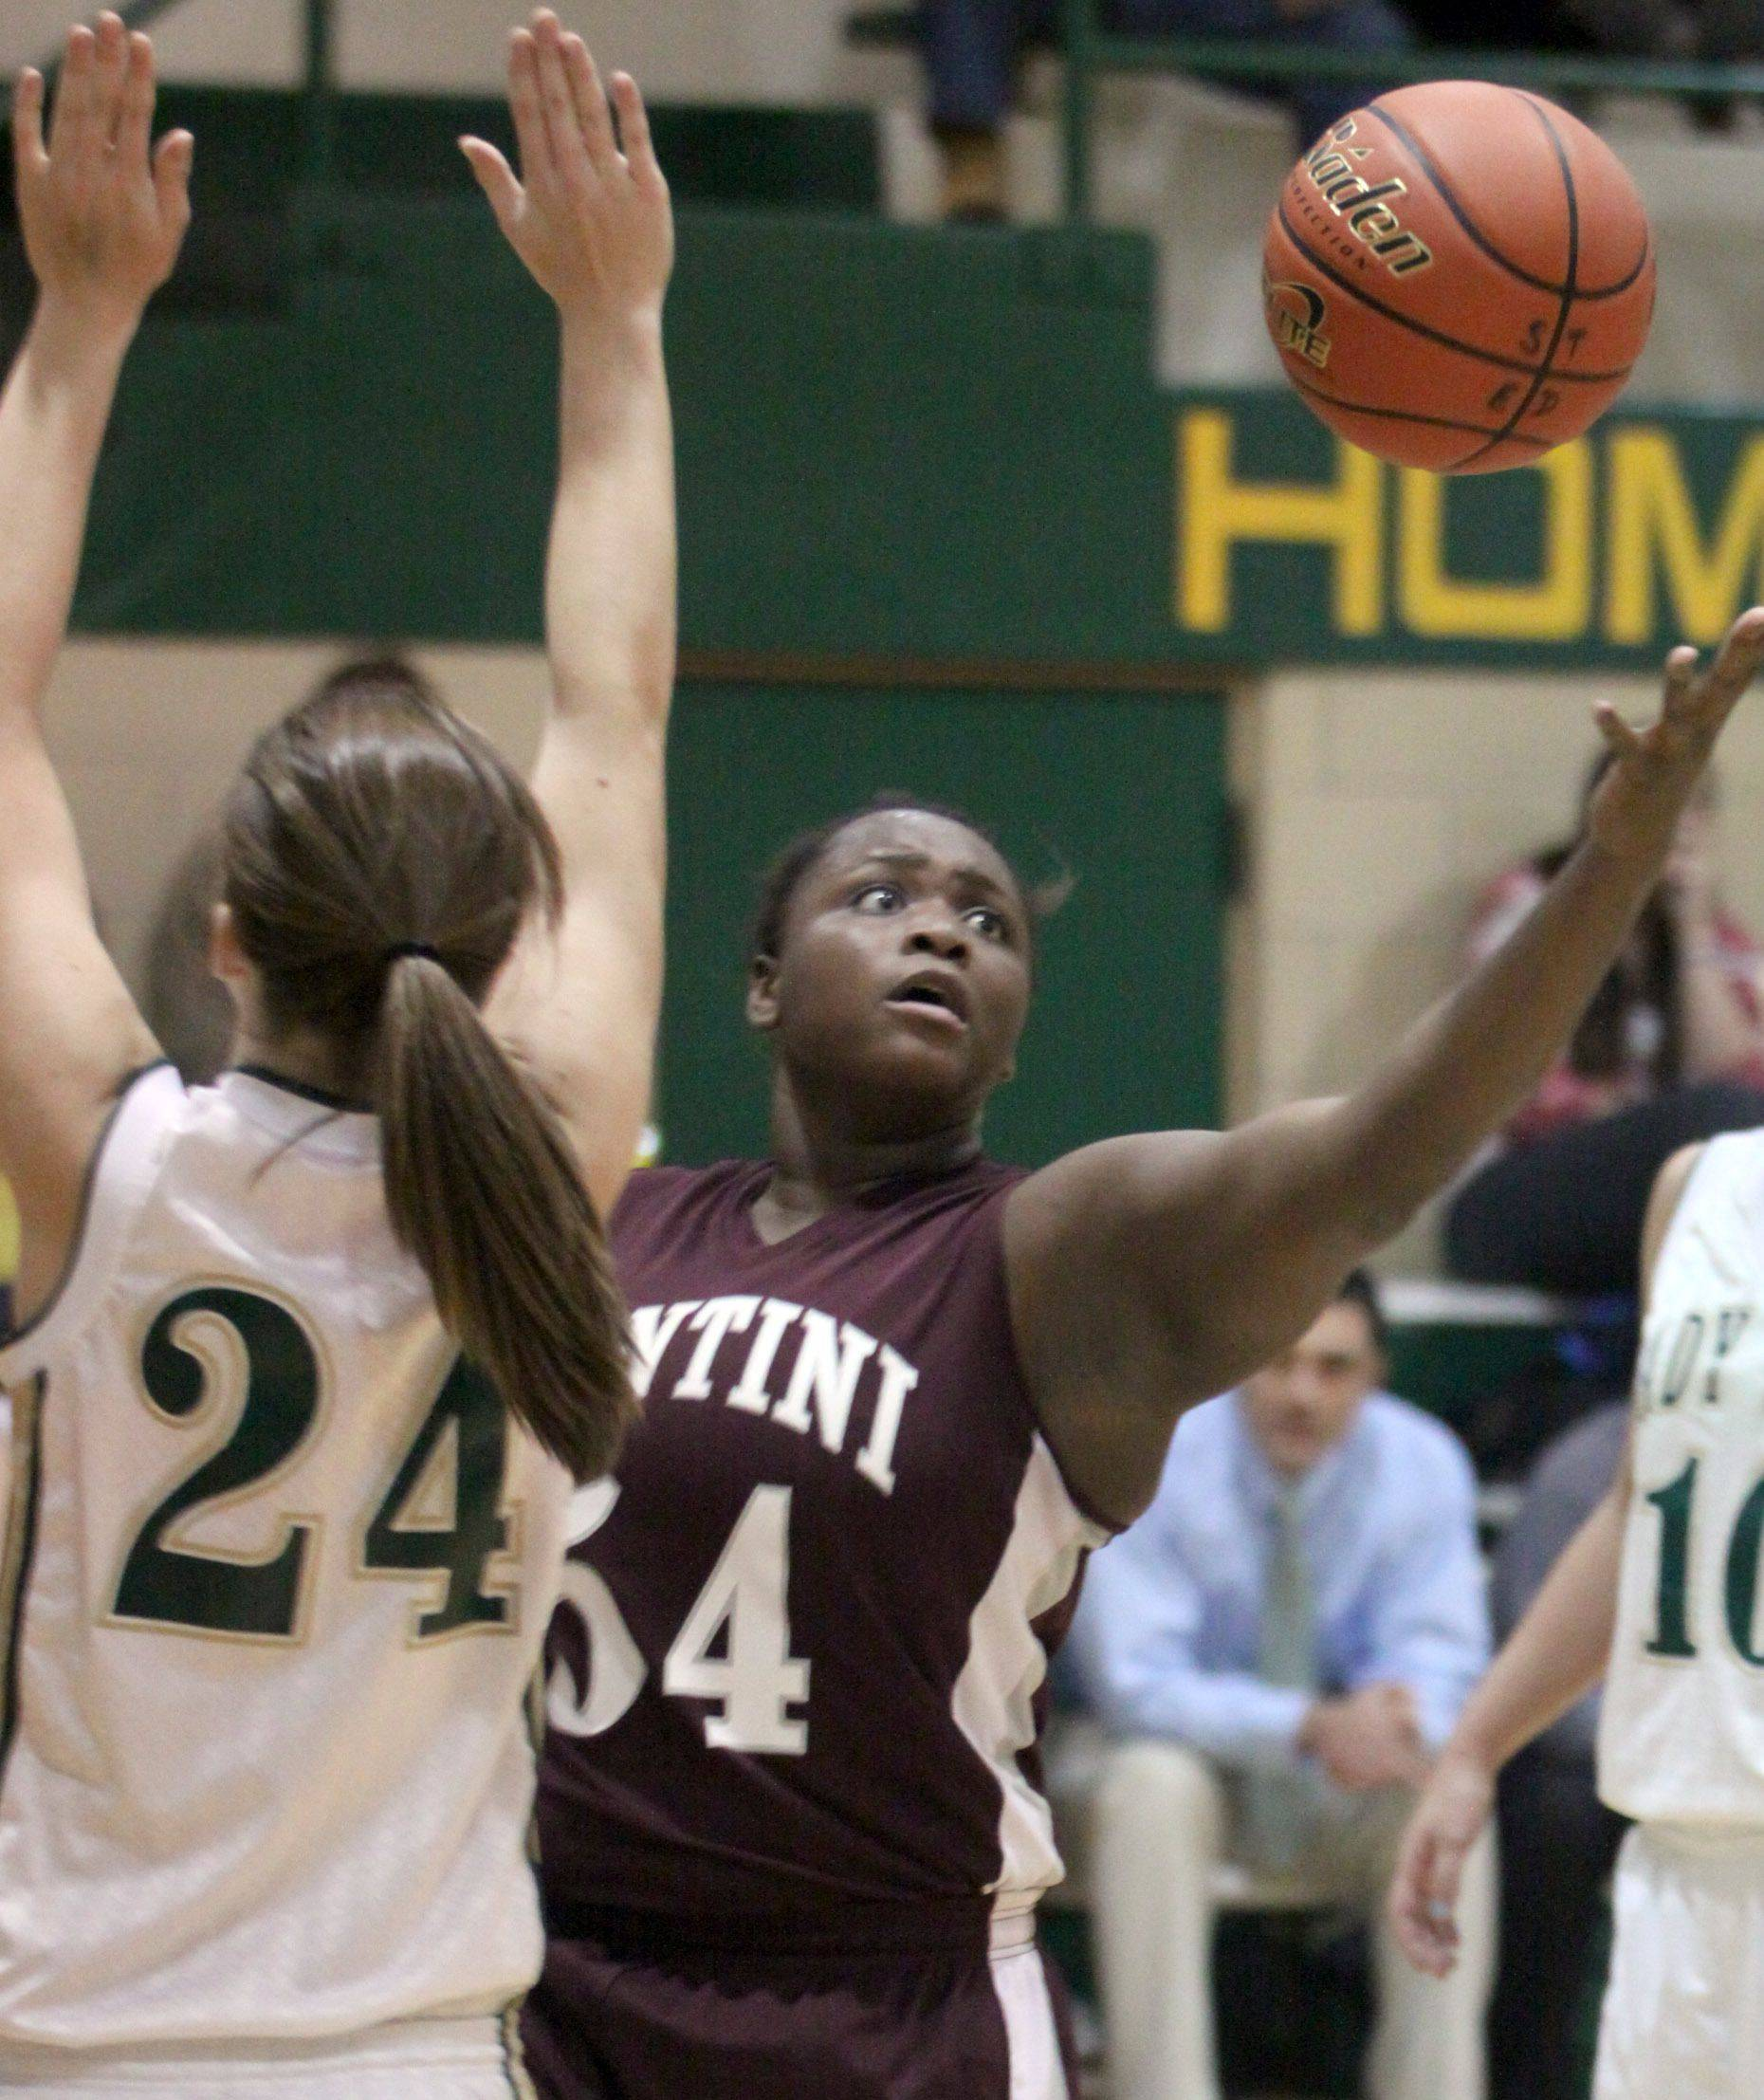 Images from the Montini vs. St. Edward girls basketball game Tuesday, November 29, 2011.